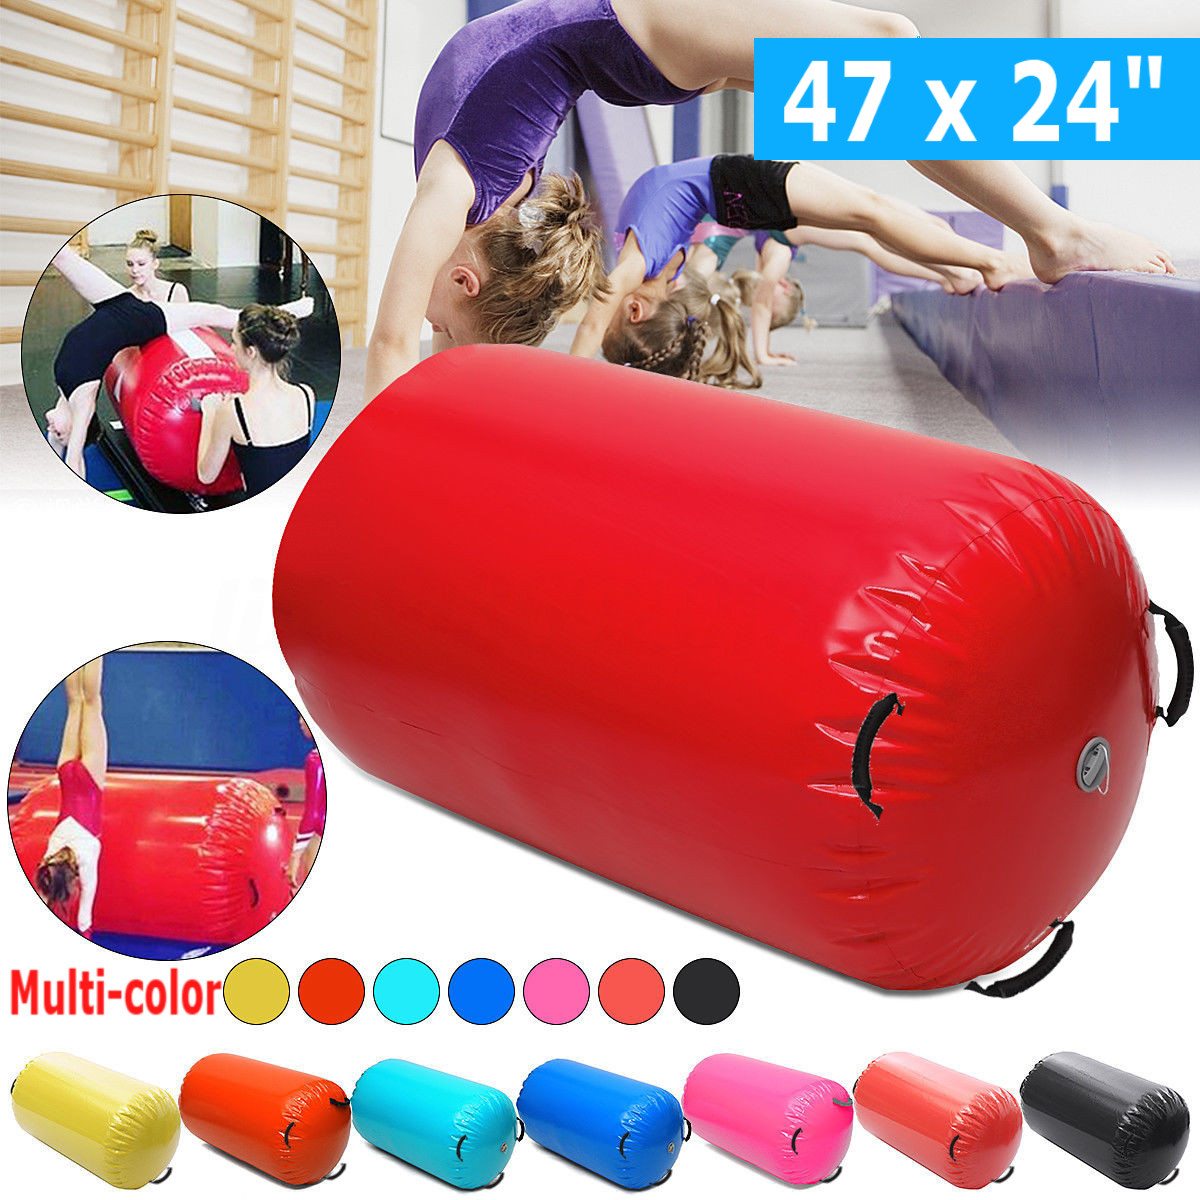 120x60cm Inflatable Gymnastic Air Rolls Beam Yoga Gymnastics Cylinder Airtrack Exercise Column